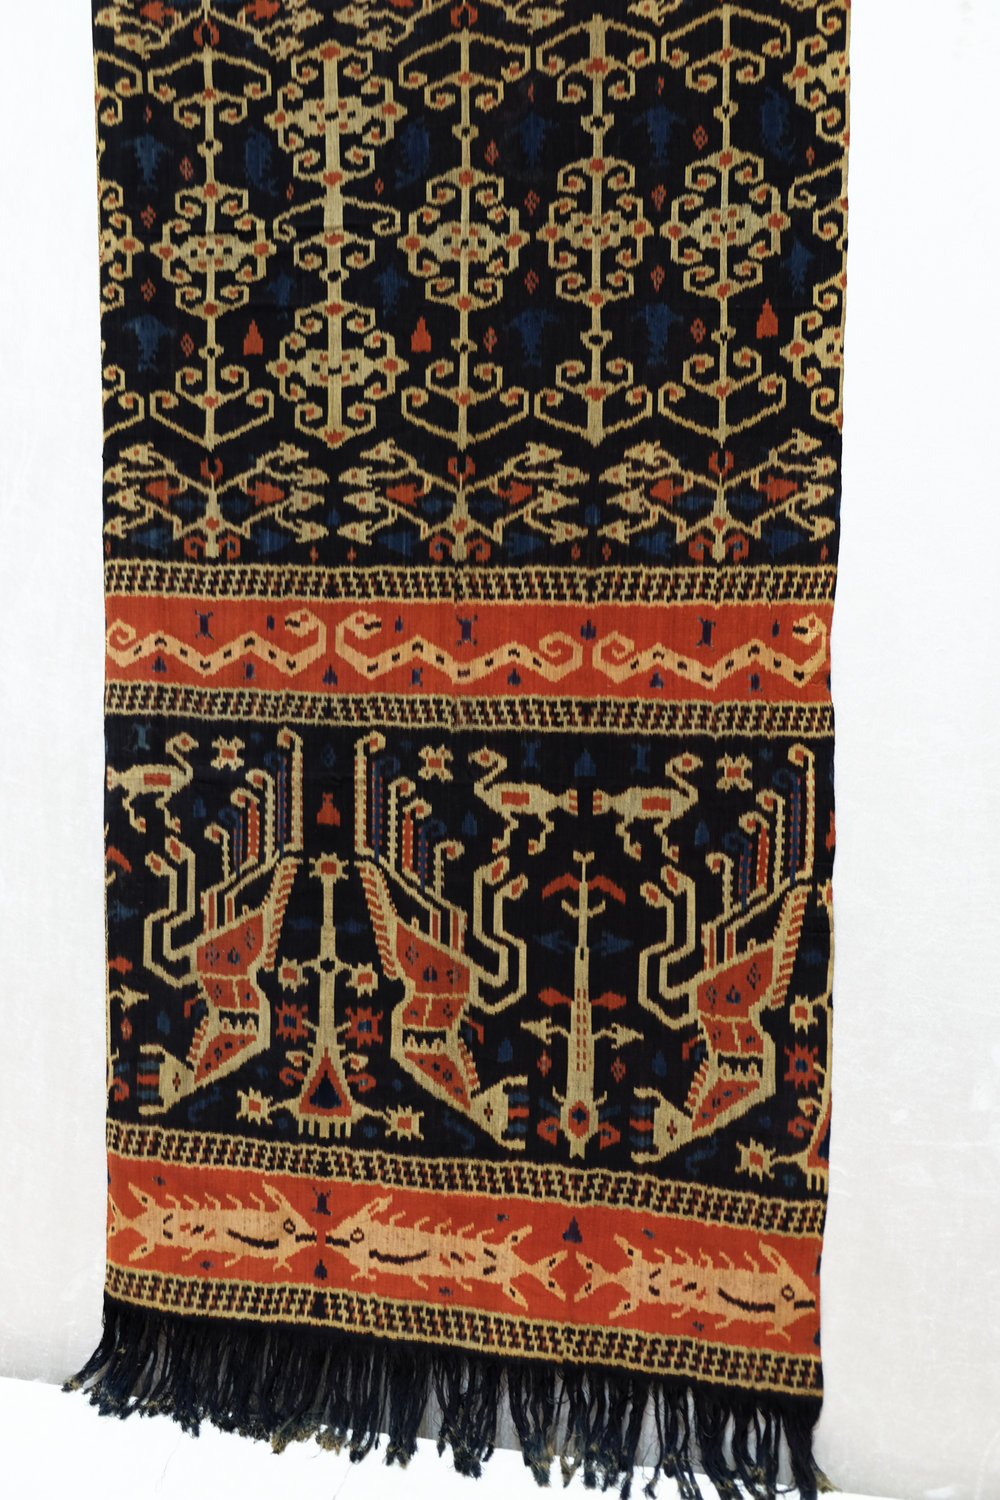 Sumba, East Sumba Kapunduk Hinggi (men's blanket) Warp ikat in hand-spun cotton 1930-1945